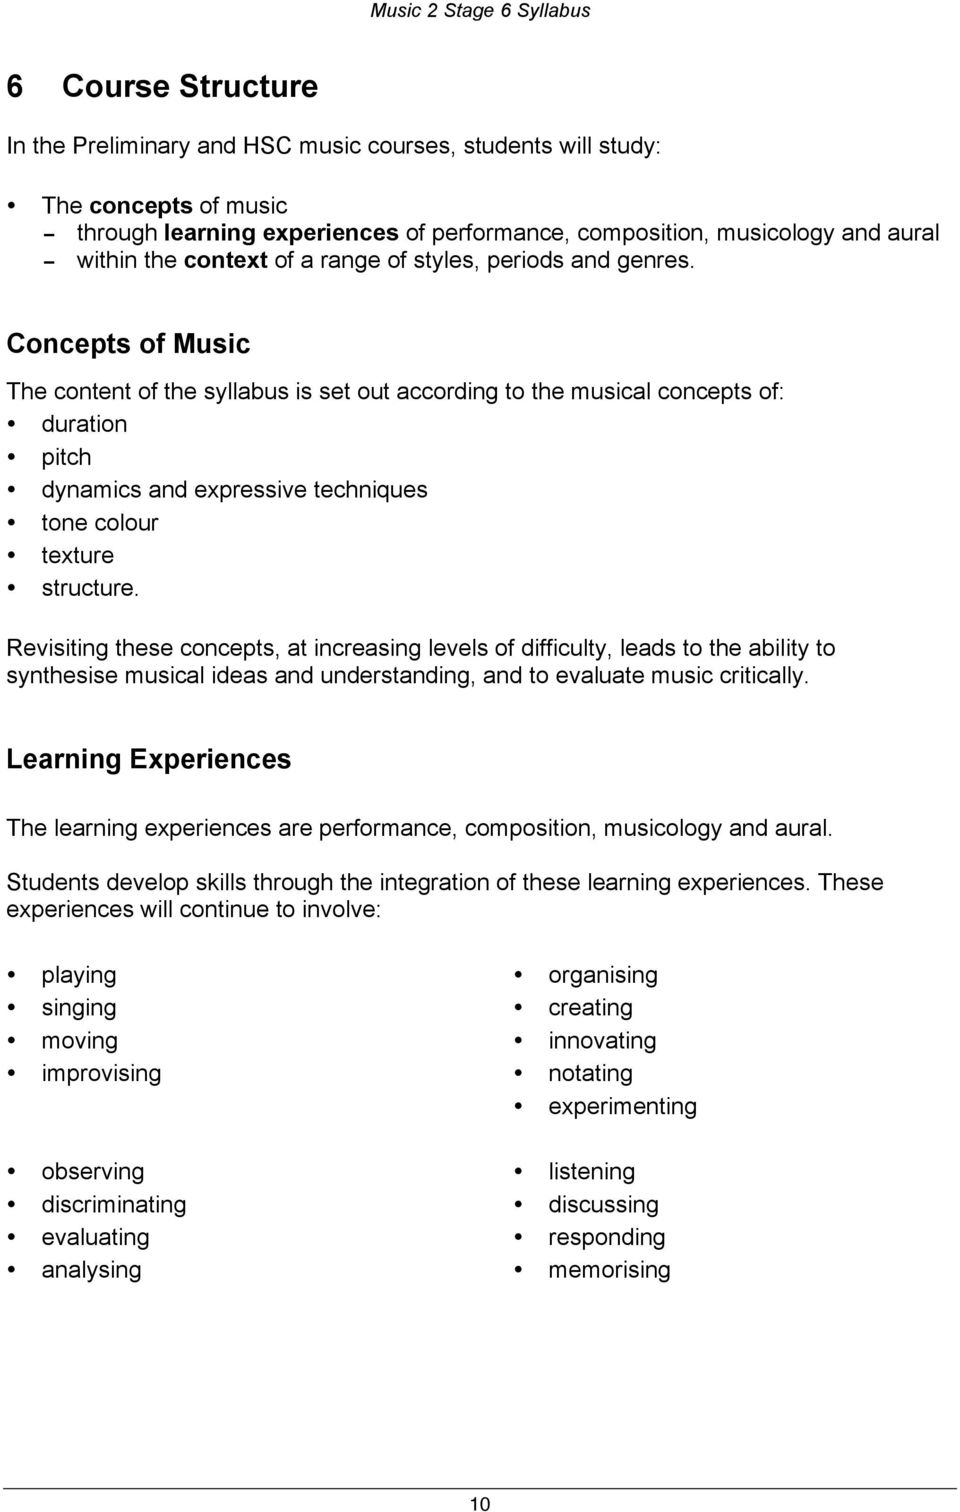 Concepts of Music The content of the syllabus is set out according to the musical concepts of: duration pitch dynamics and expressive techniques tone colour texture structure.